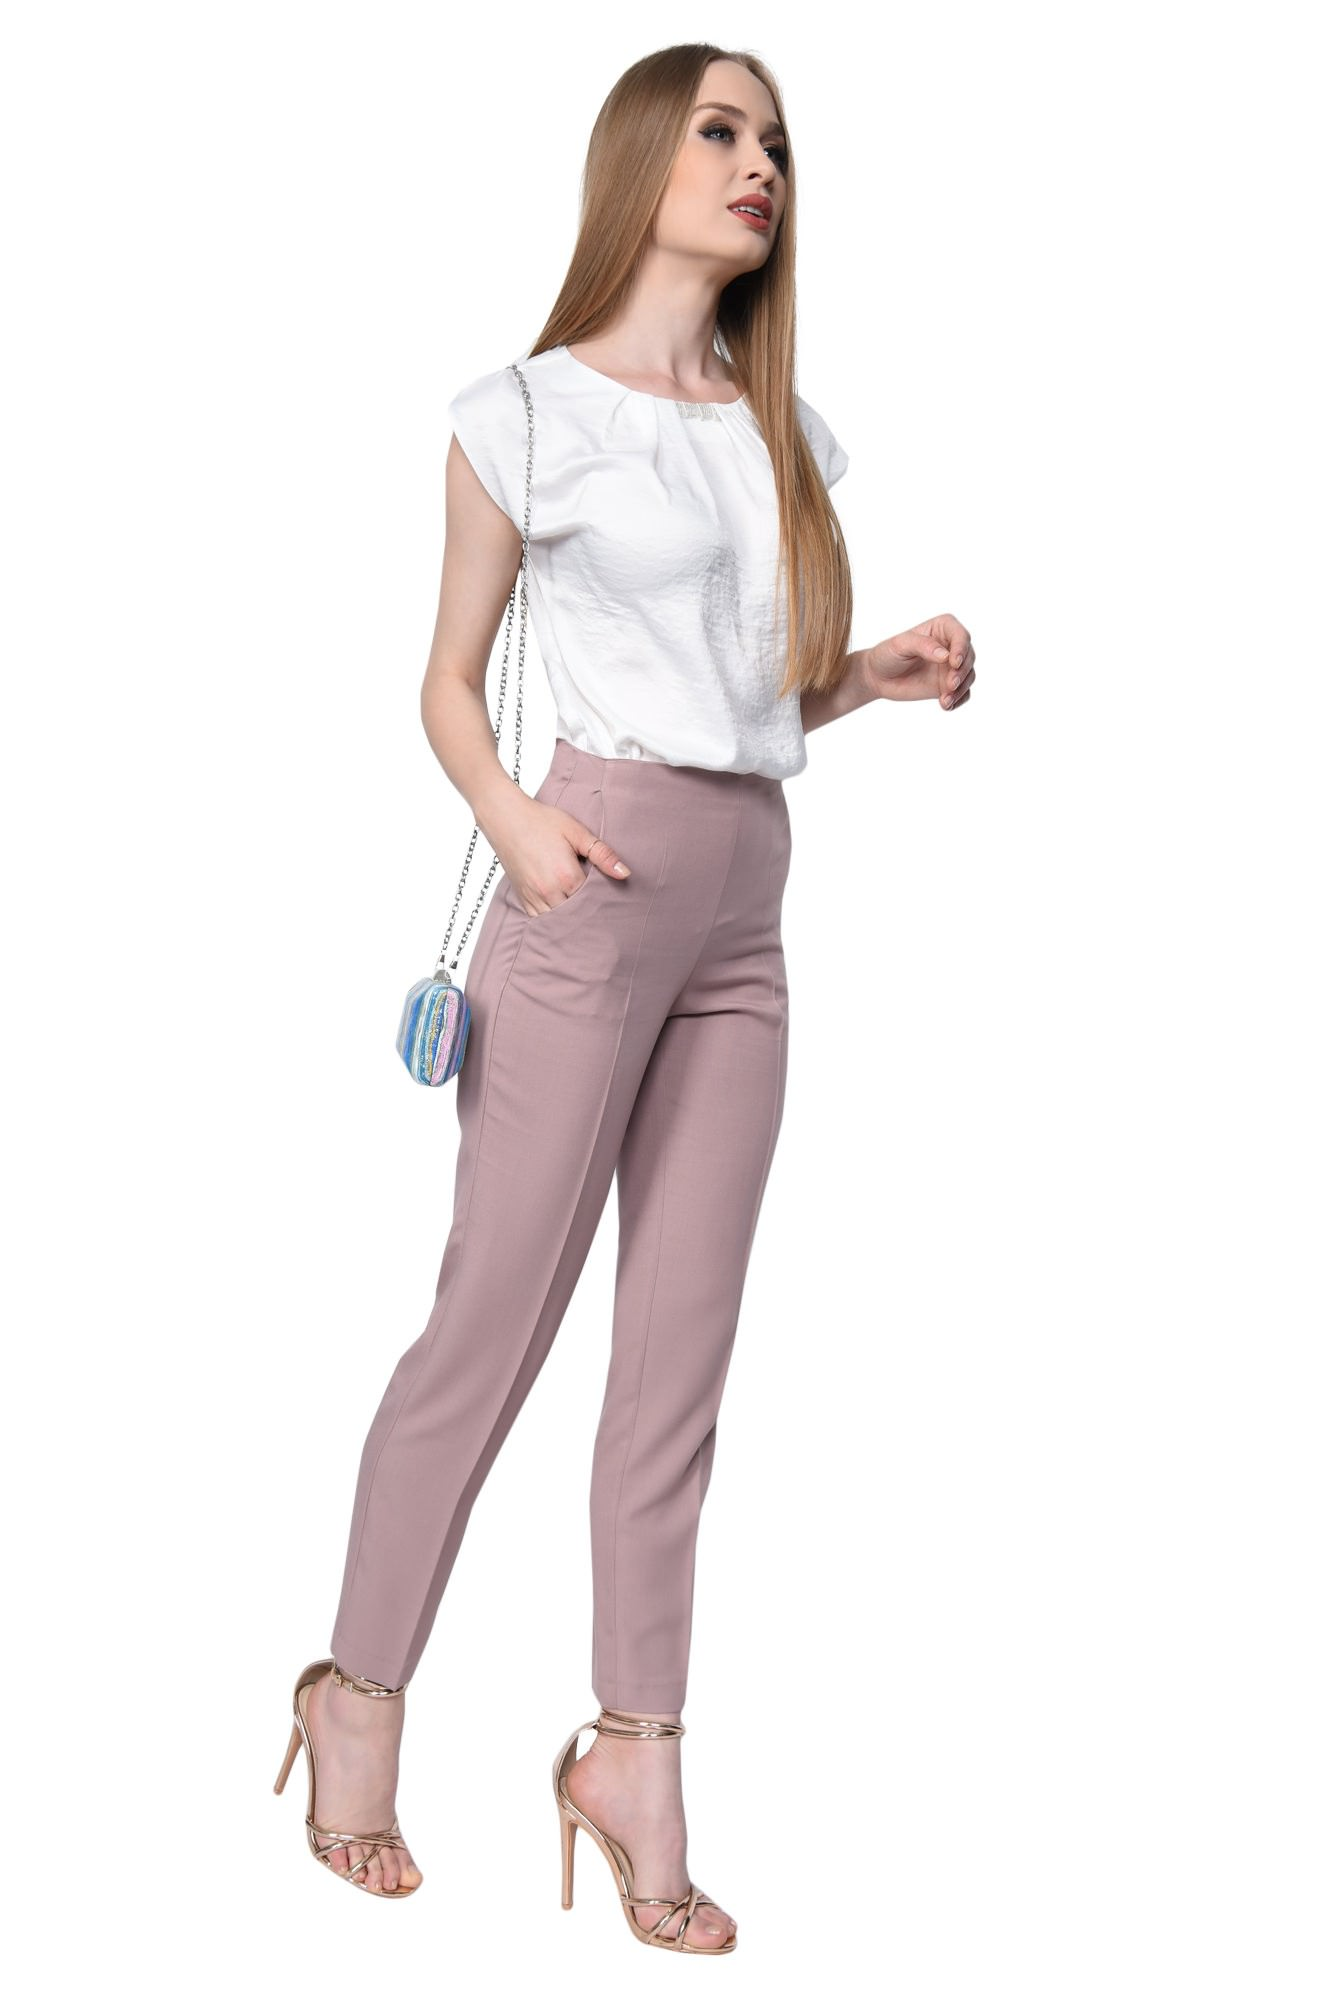 PANTALON CASUAL CONIC PT 152-BEJ